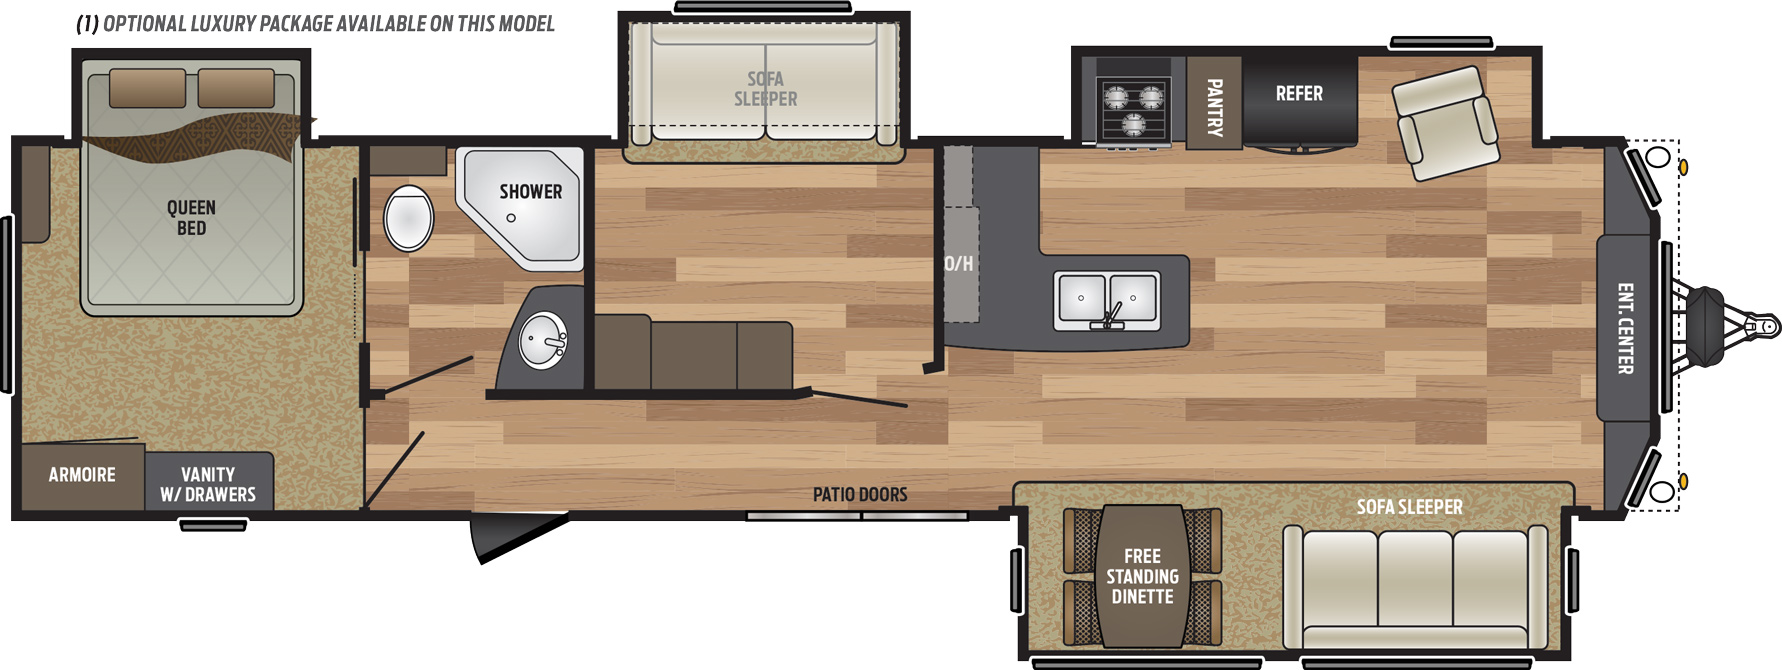 2019 KEYSTONE RETREAT 39MBNK (bunks) Floorplan